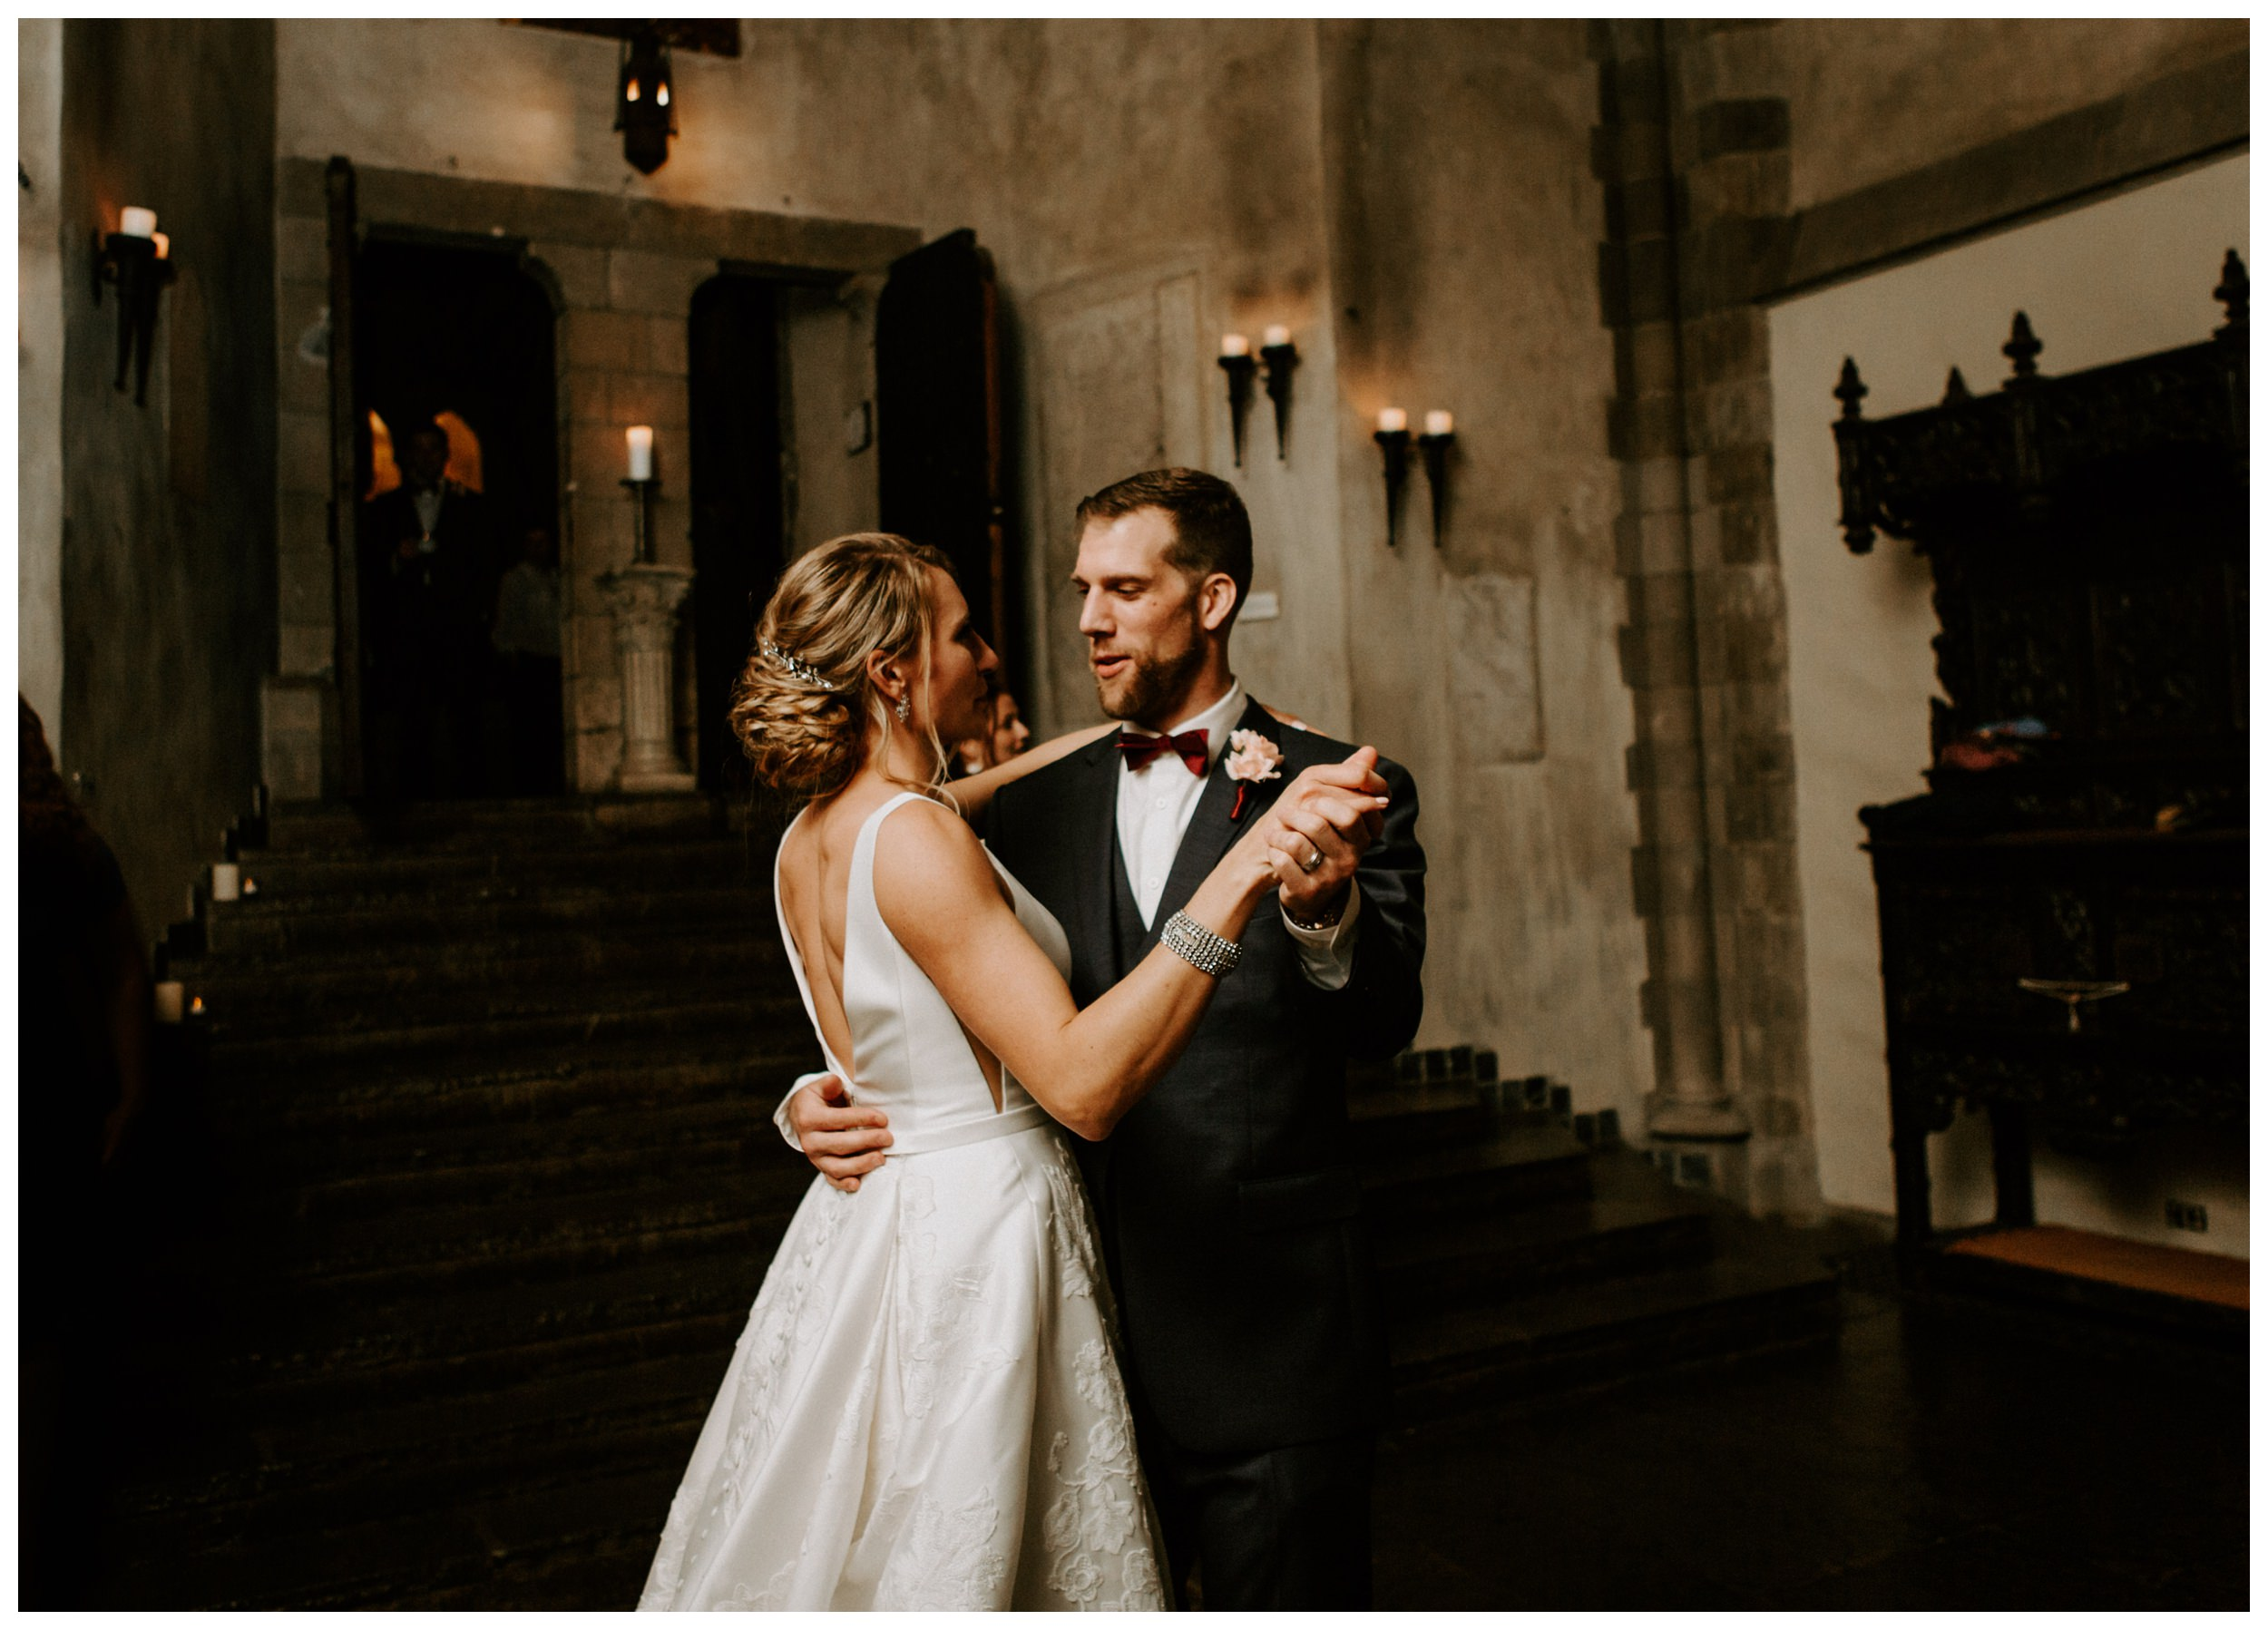 romantic-candlelit-wedding-hammond-castle-museum-gloucester67.jpg